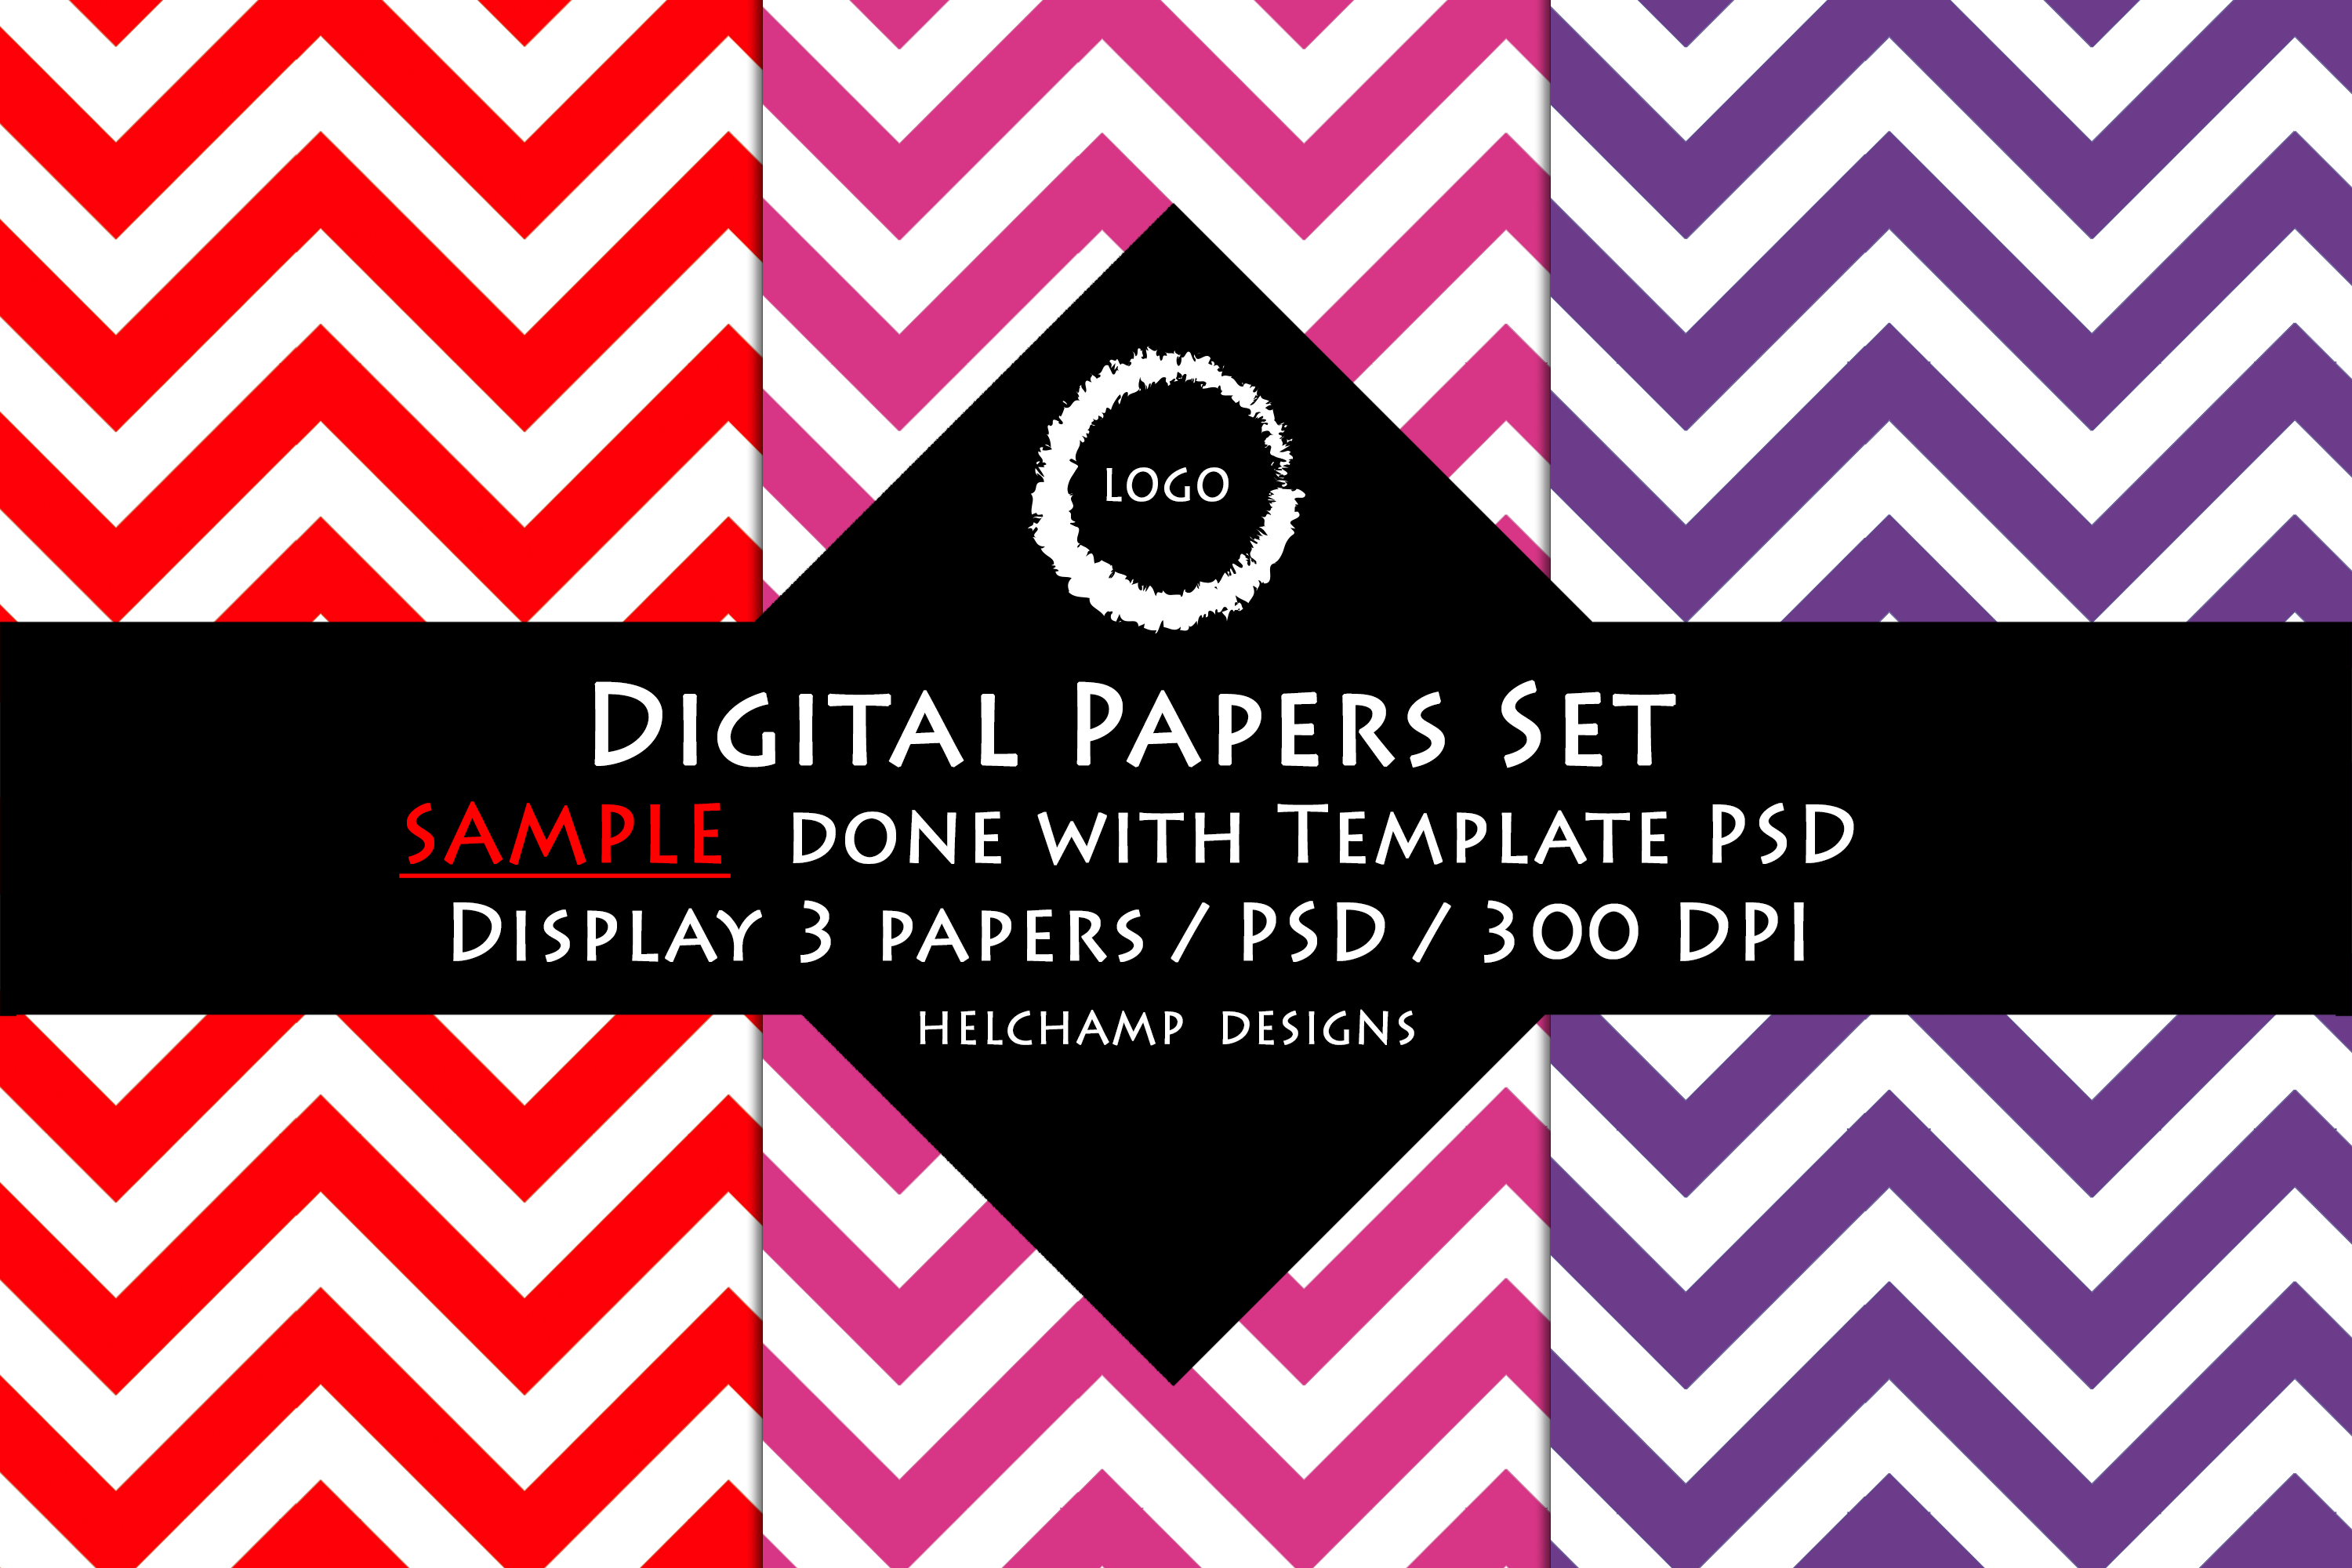 3 Panels Mockup for Digital Papers - M00 example image 4